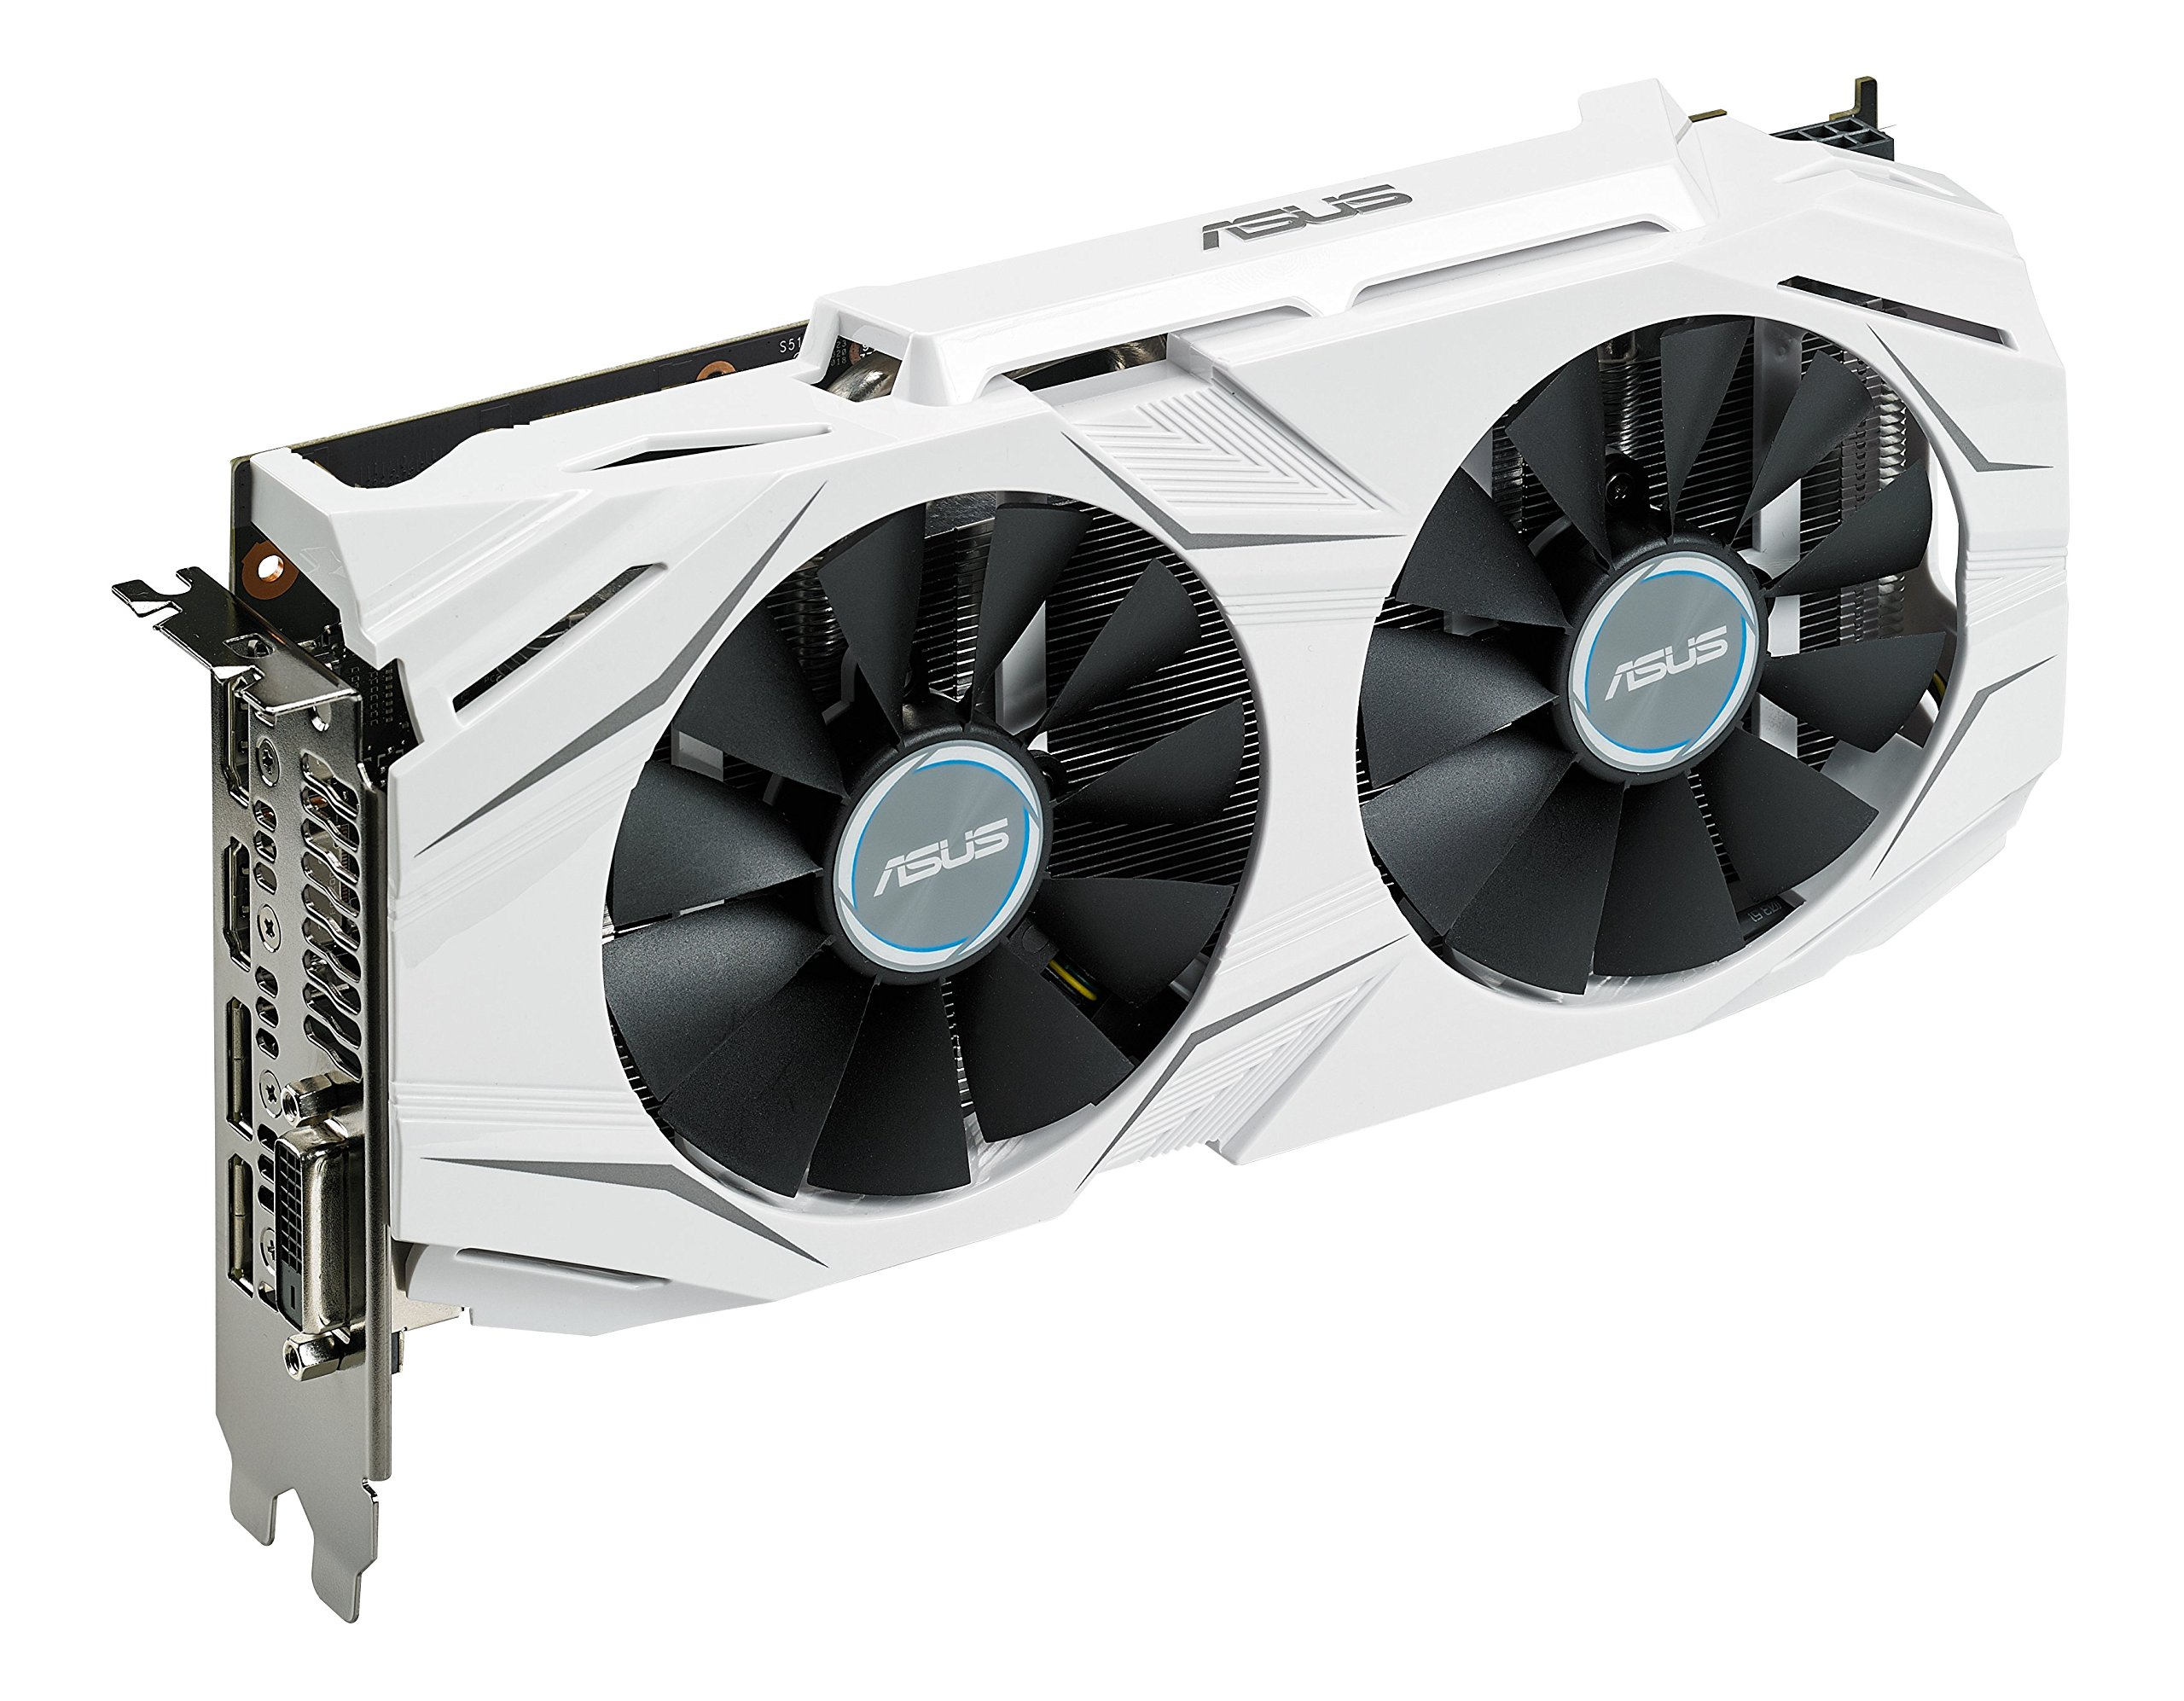 ASUS GeForce GTX 1060 3GB Dual-Fan OC Edition Graphics Card (DUAL-GTX1060-O3G) by Asus (Image #3)